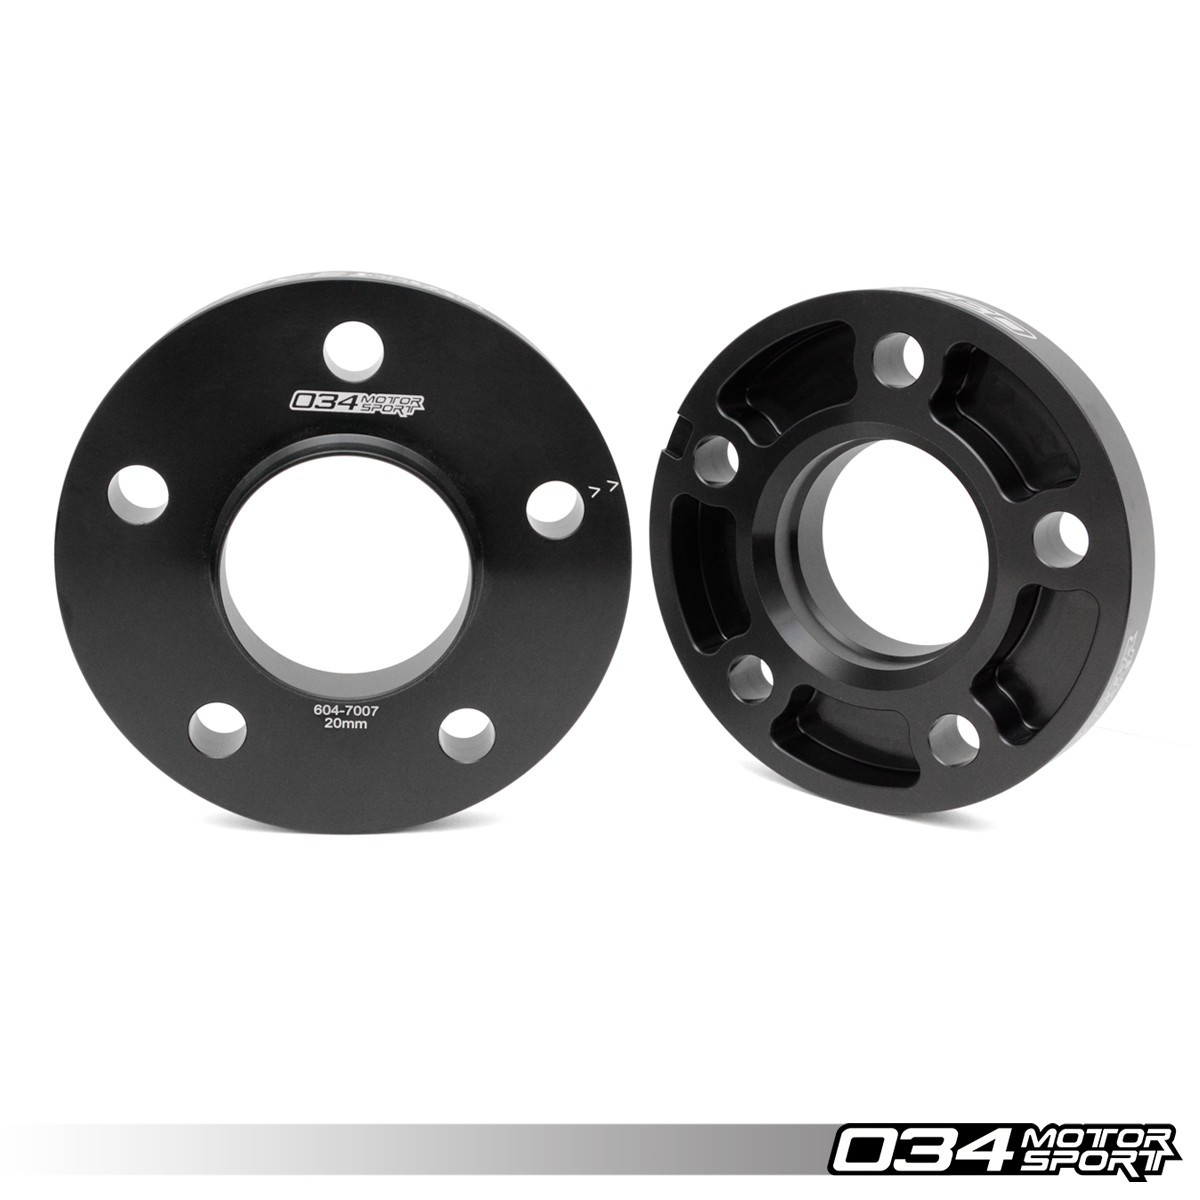 034 Wheel Spacer Pair, 5X112, 20mm Thick, 66.5mm Hub